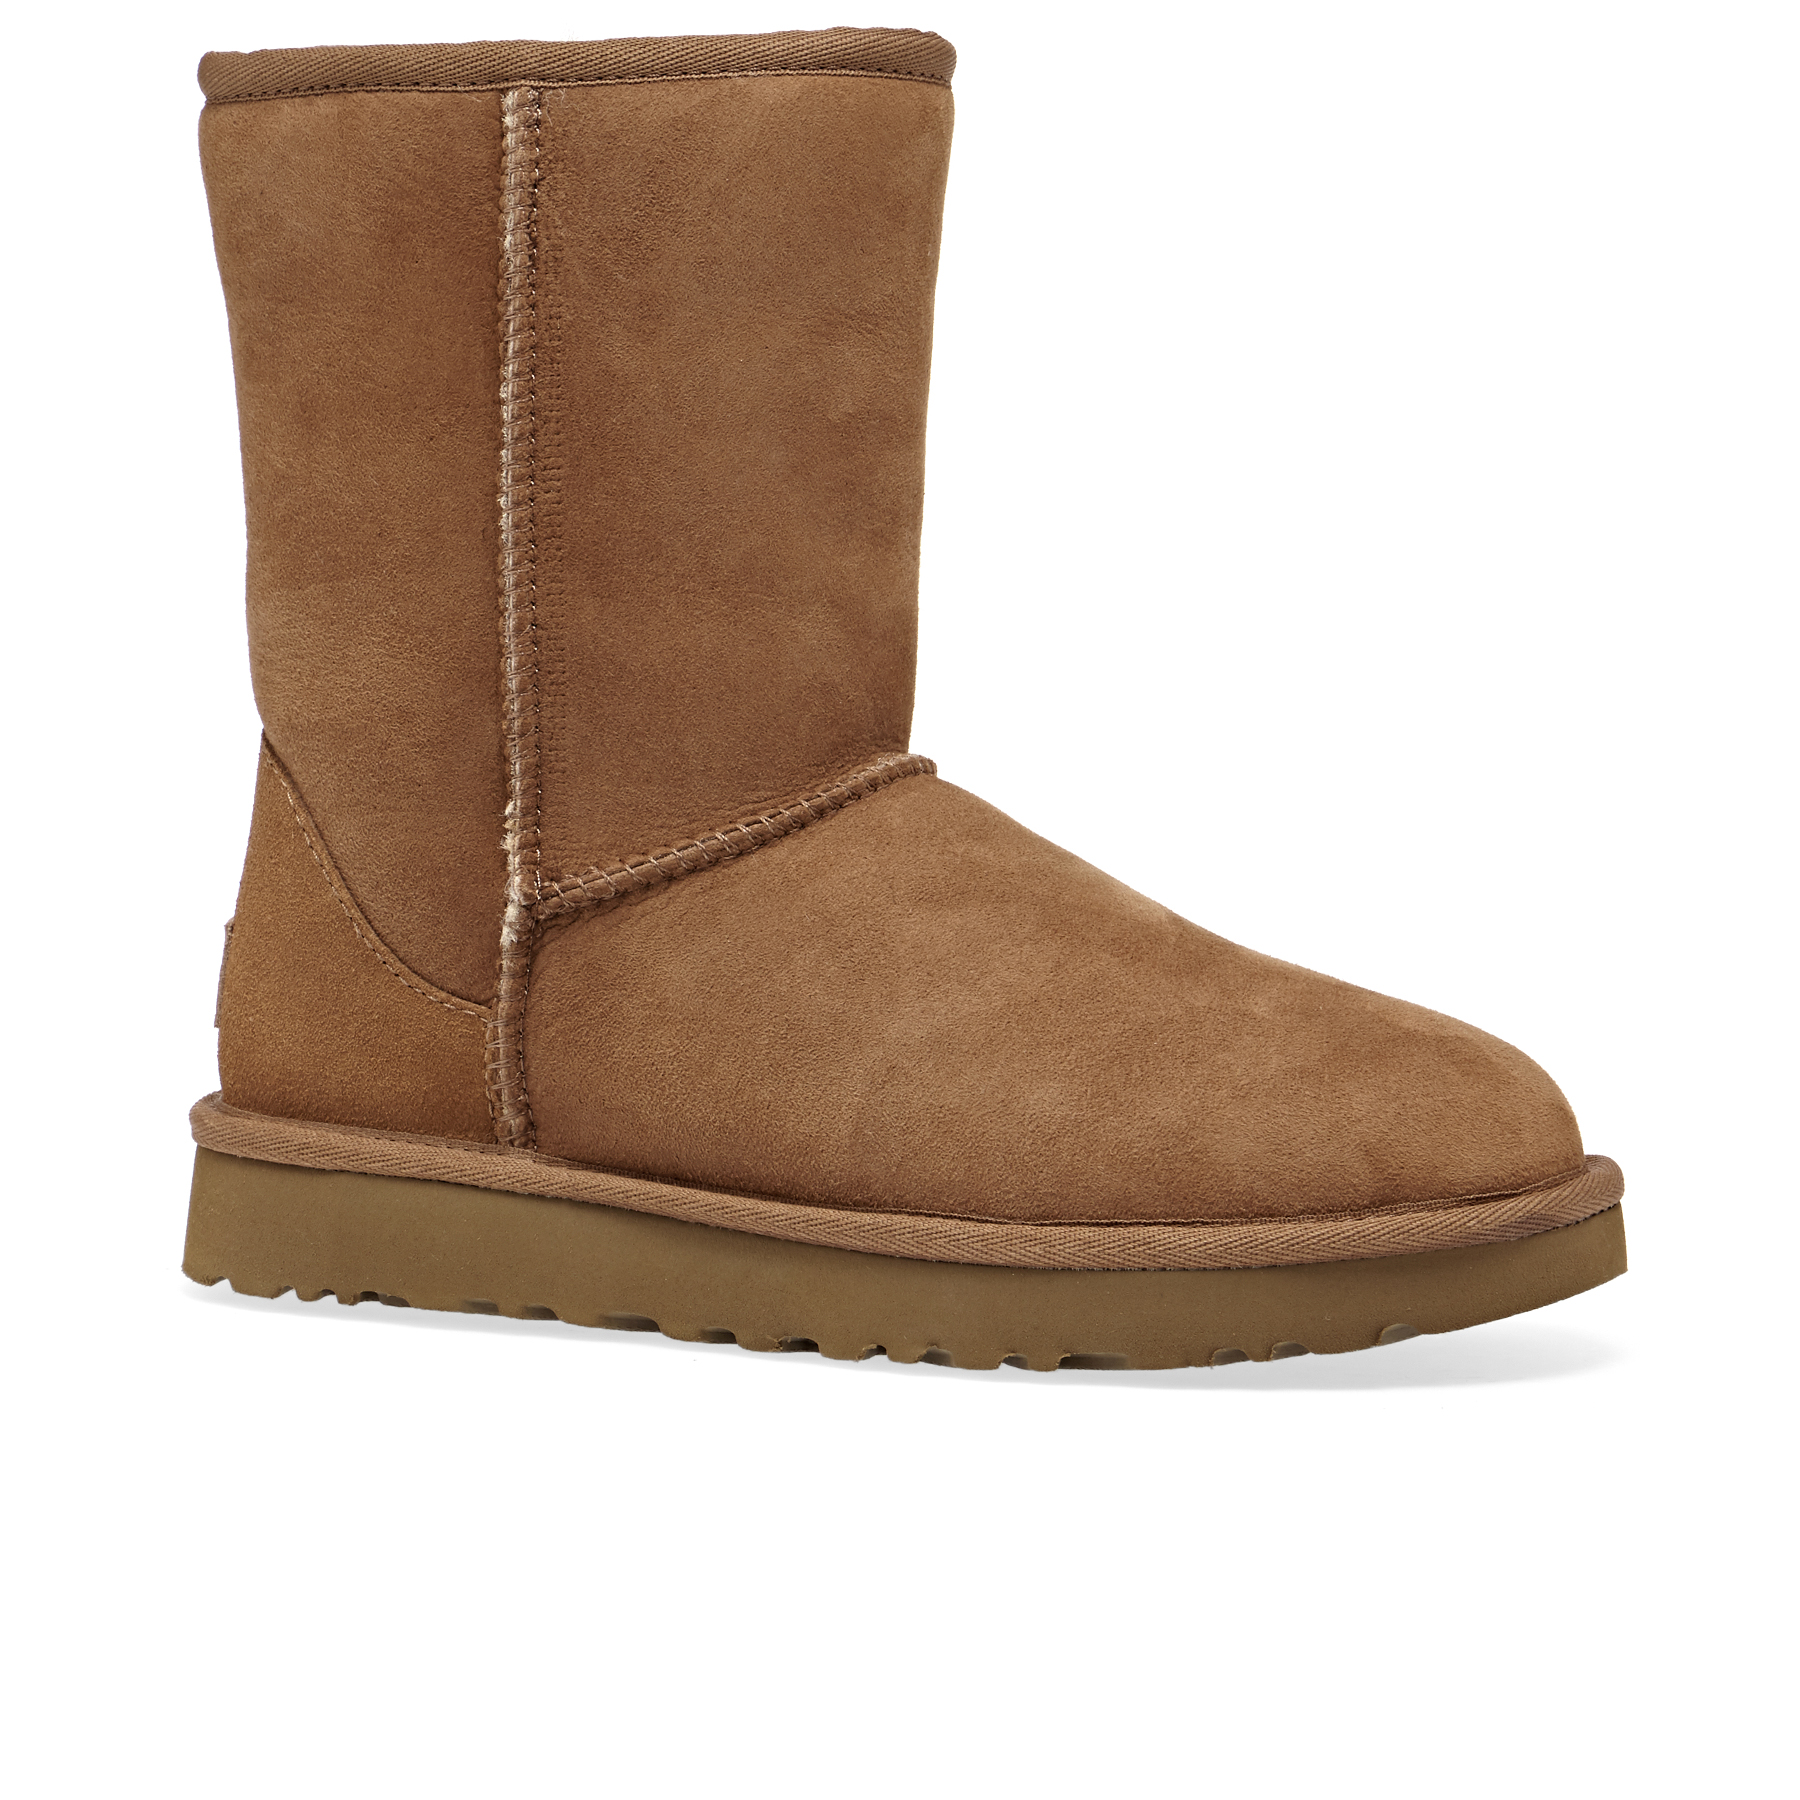 UGG Blayre IV Women's Boots Stout | Country Attire UK